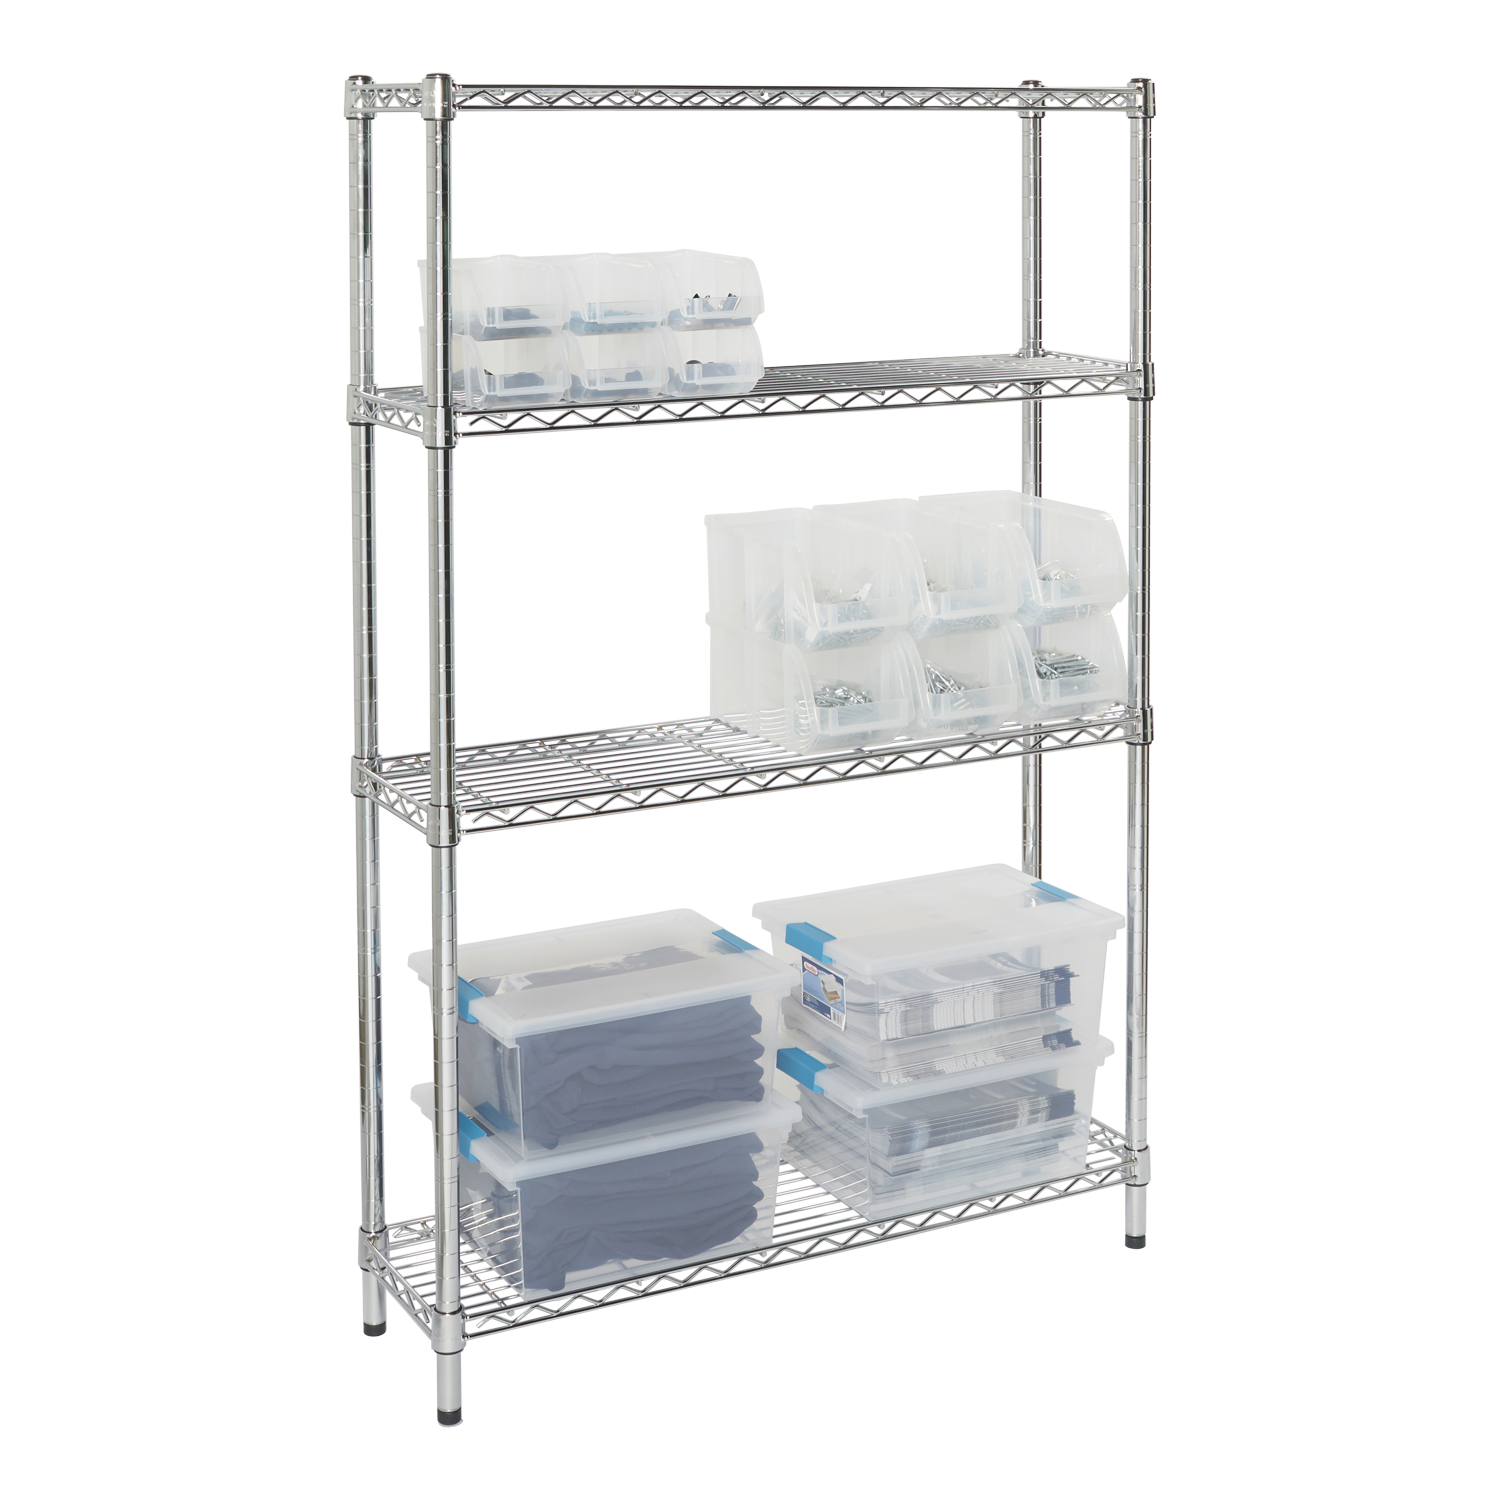 Aluminum clip adjustable shelving. Shelves and for home